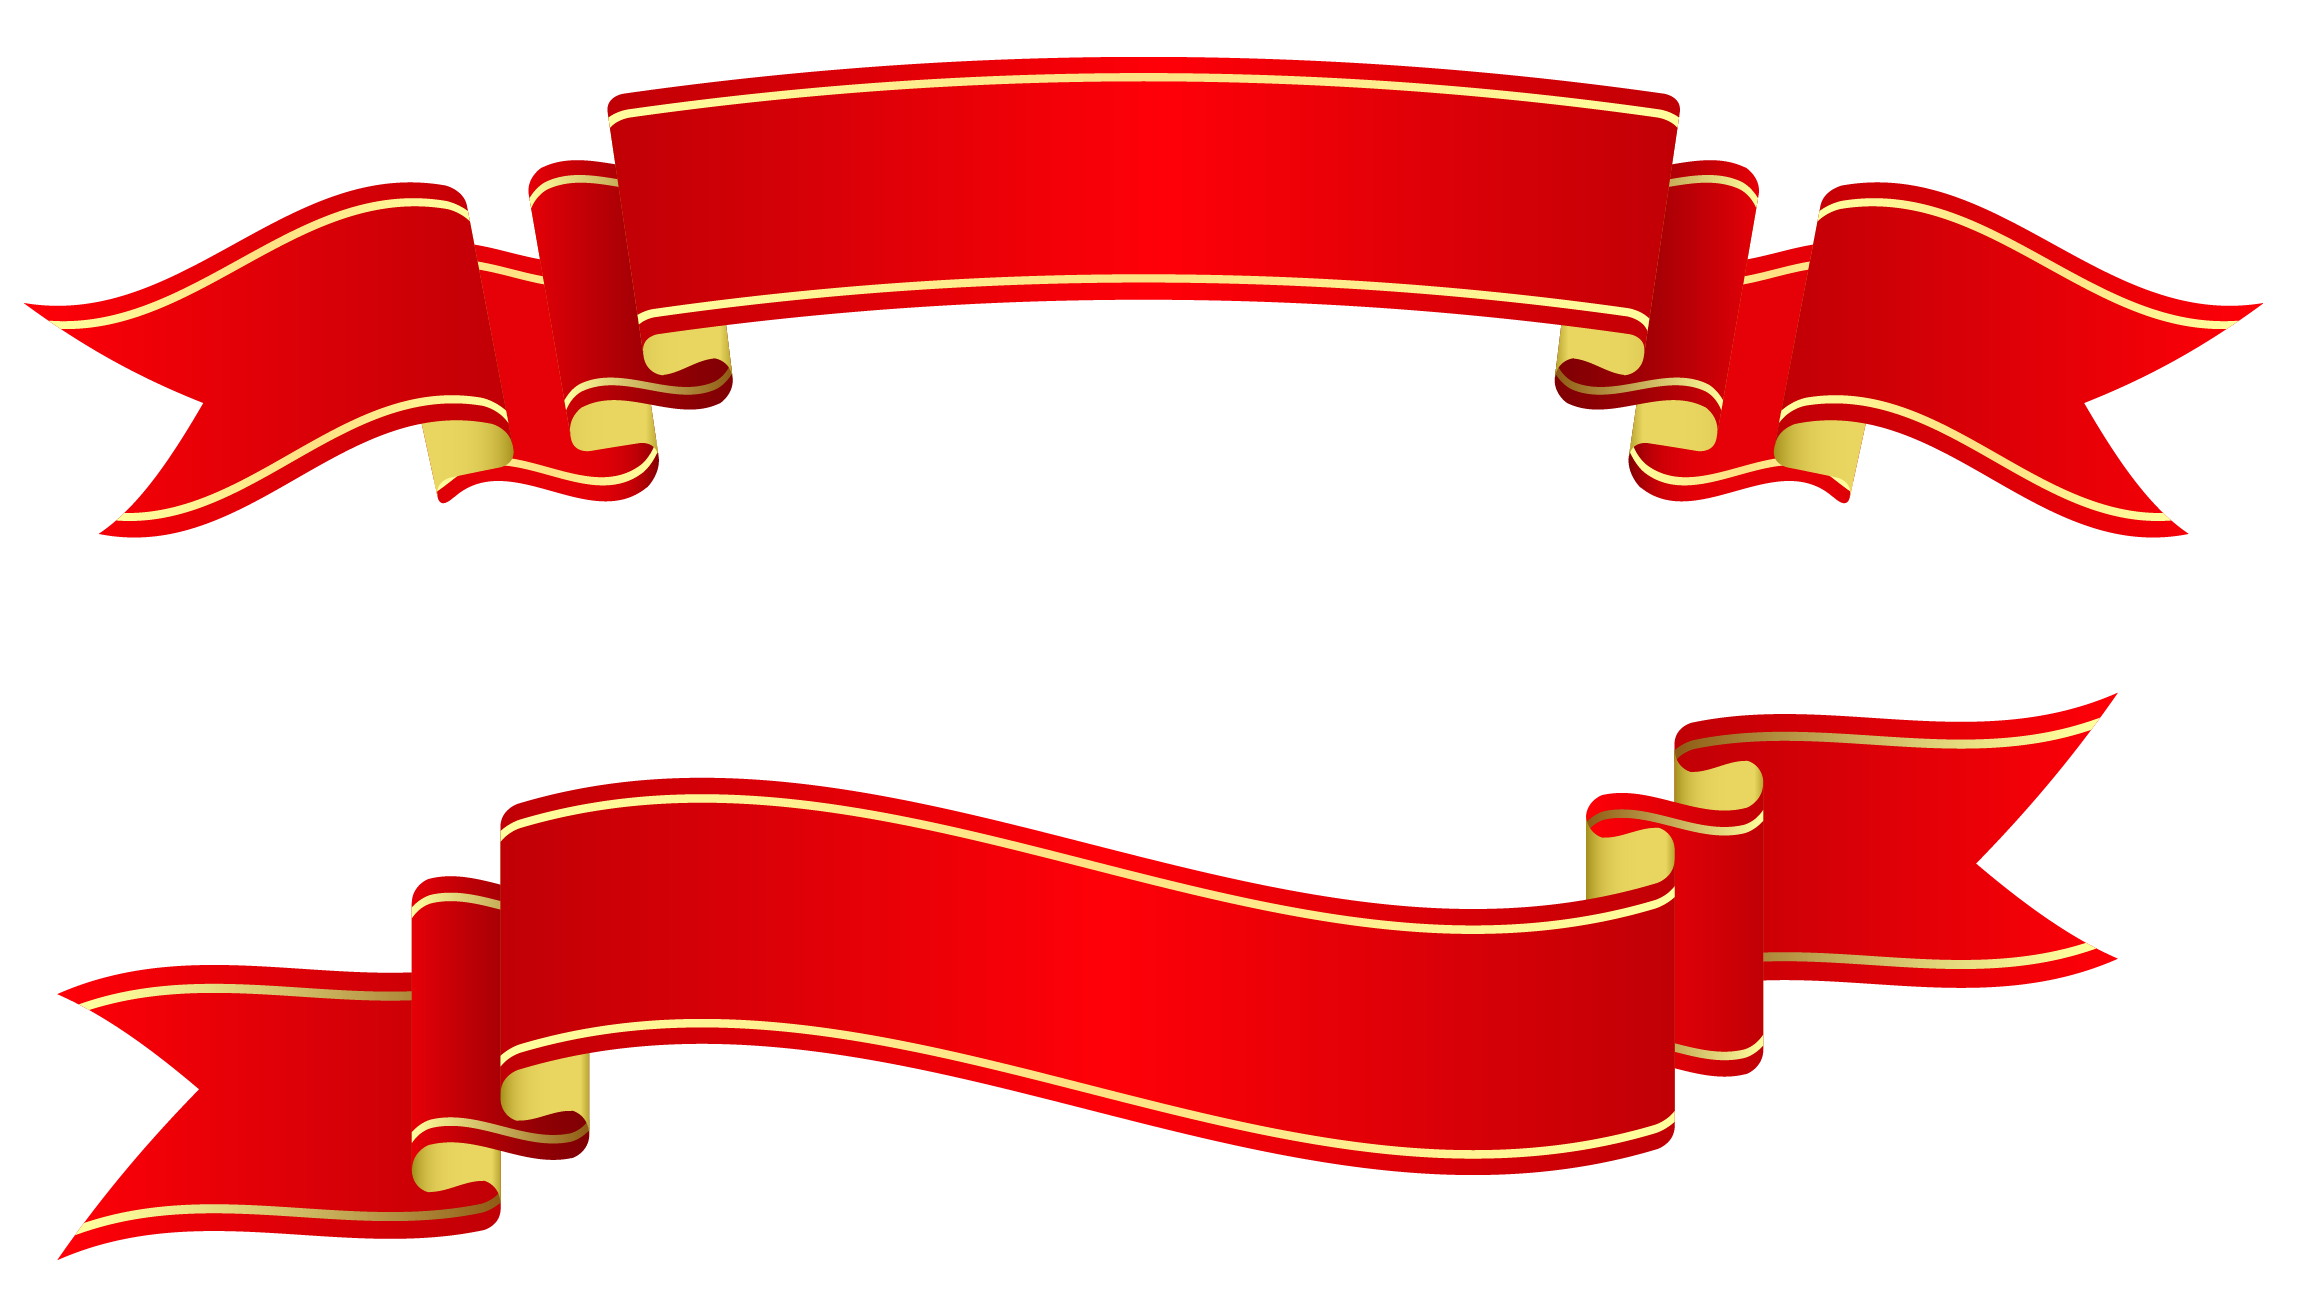 Banner Ribbon Png Red Banners Png Clipart image #809 - Ribbon PNG